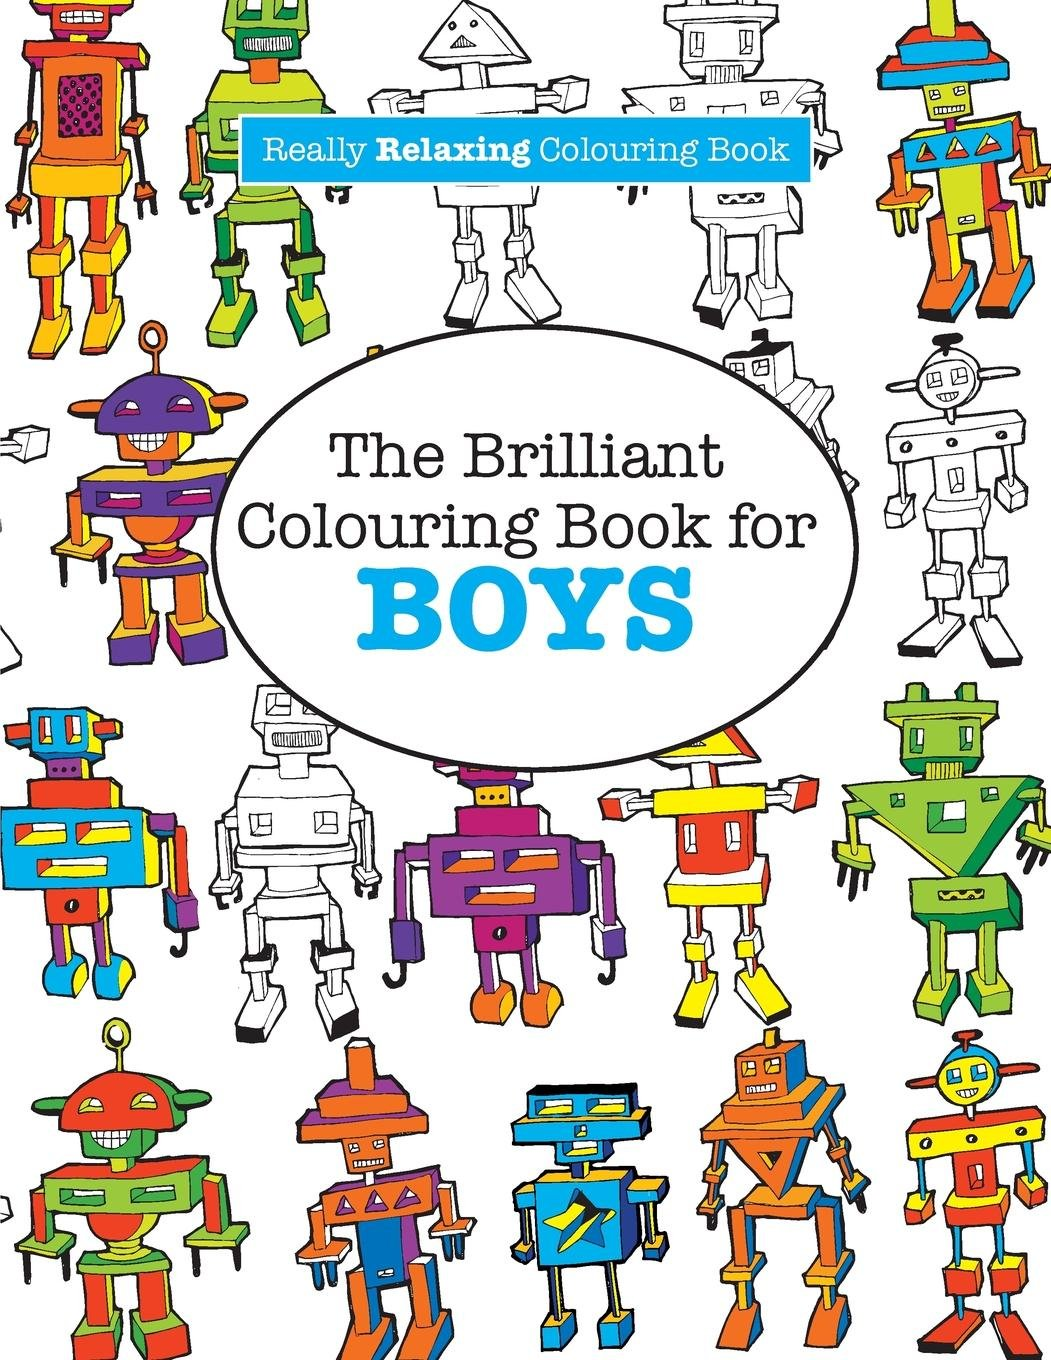 The Brilliant Colouring Book for BOYS  (A Really RELAXING Colouring Book) ebook